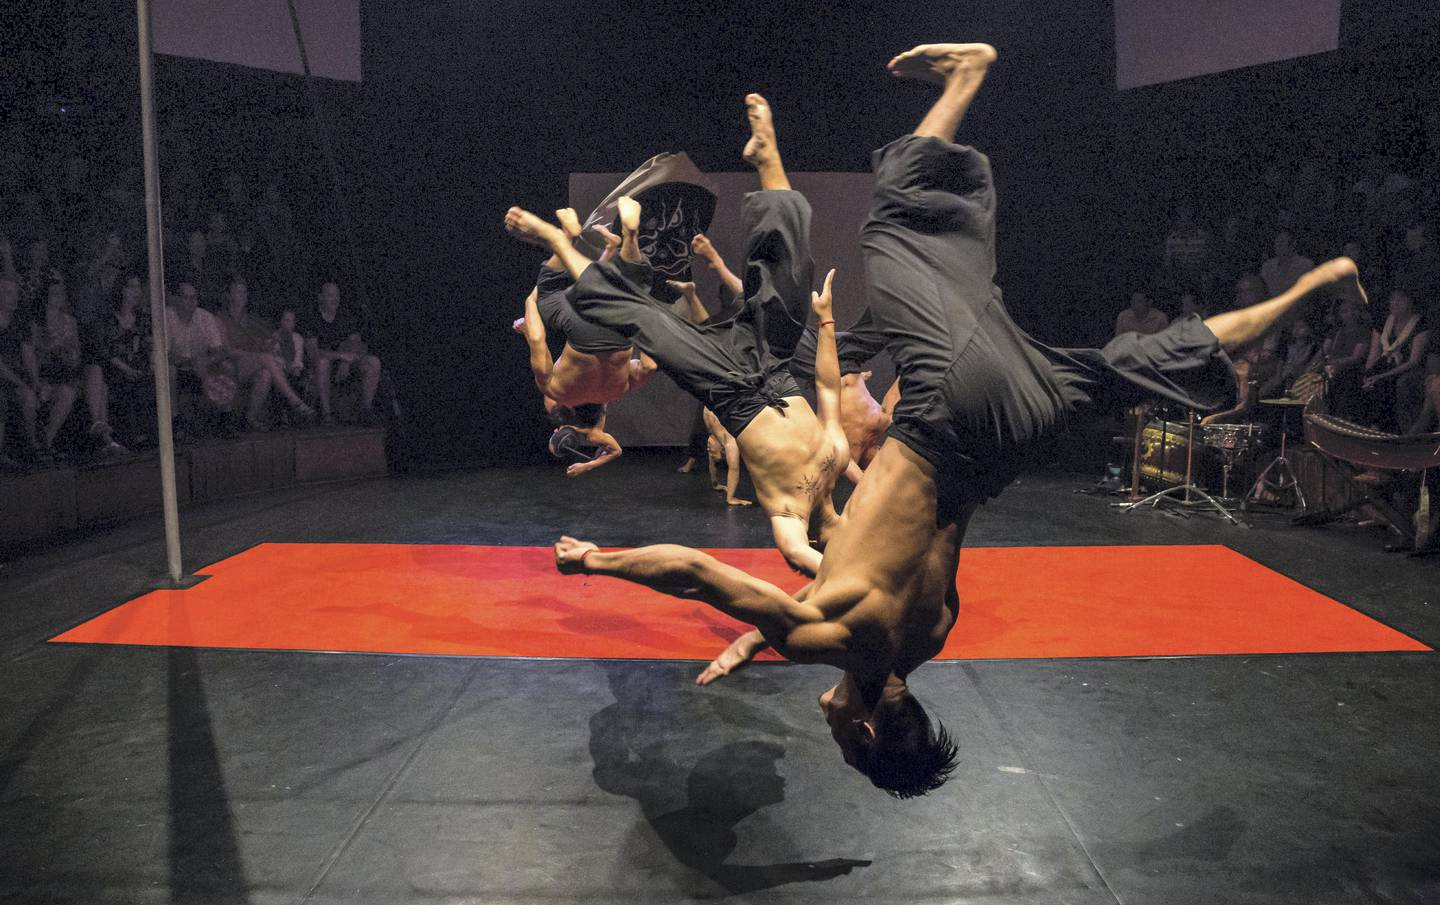 Eclipse performed by Phare Circus. Photo by Claude Le Roux